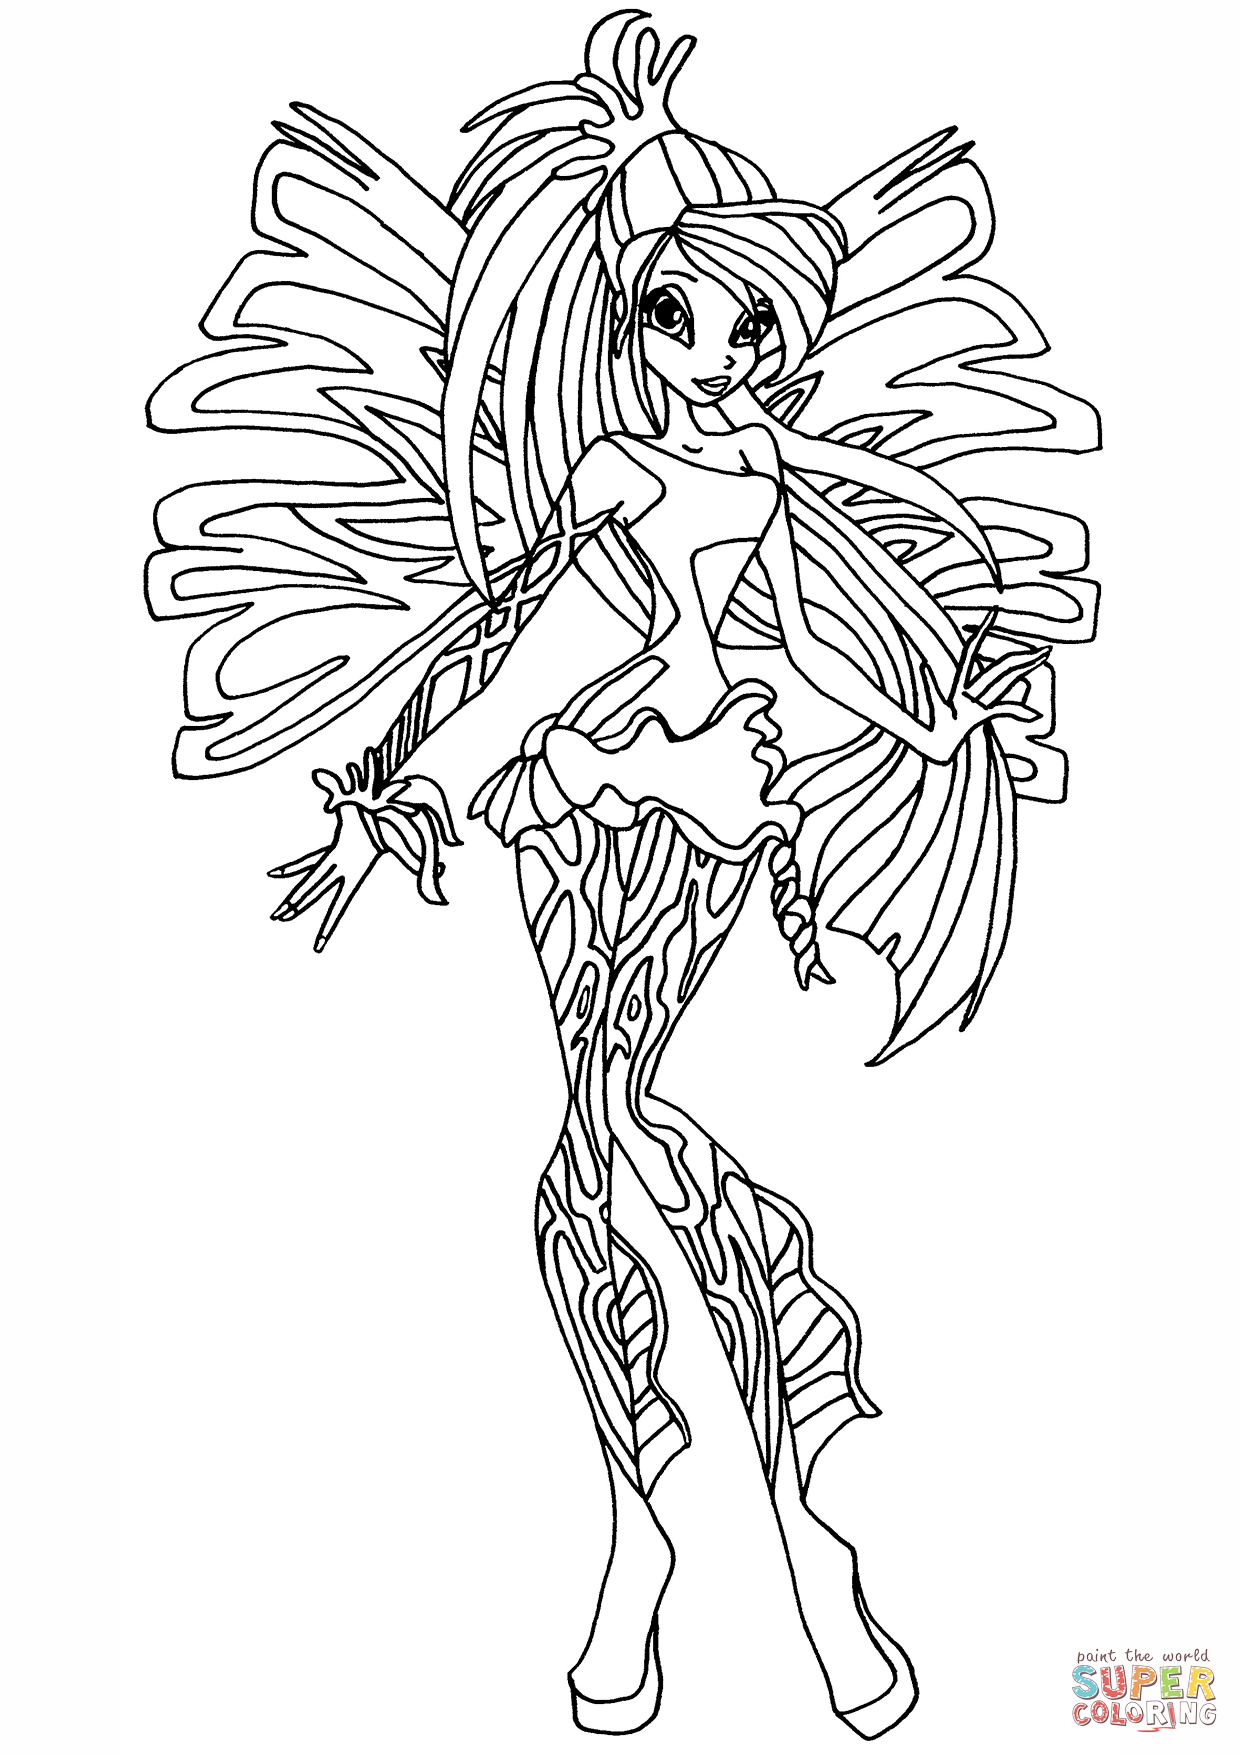 Winx Coloring Pages With Winx Club Sirenix Bloom Page Adult